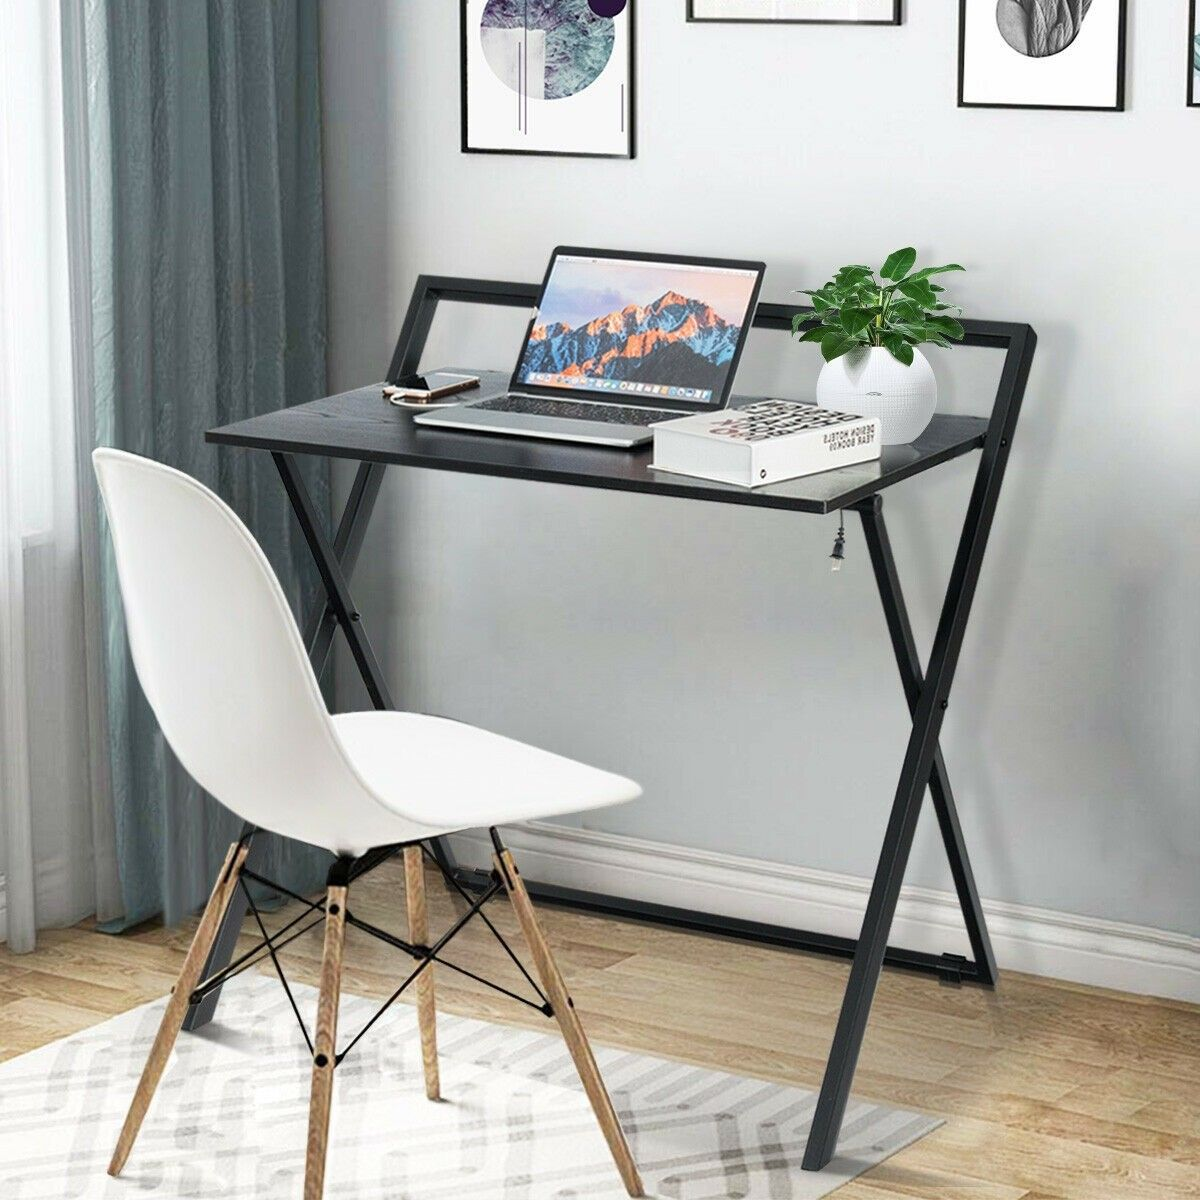 Folding Simple Pc Laptop Writing Table Computer Desk 85 95 Free